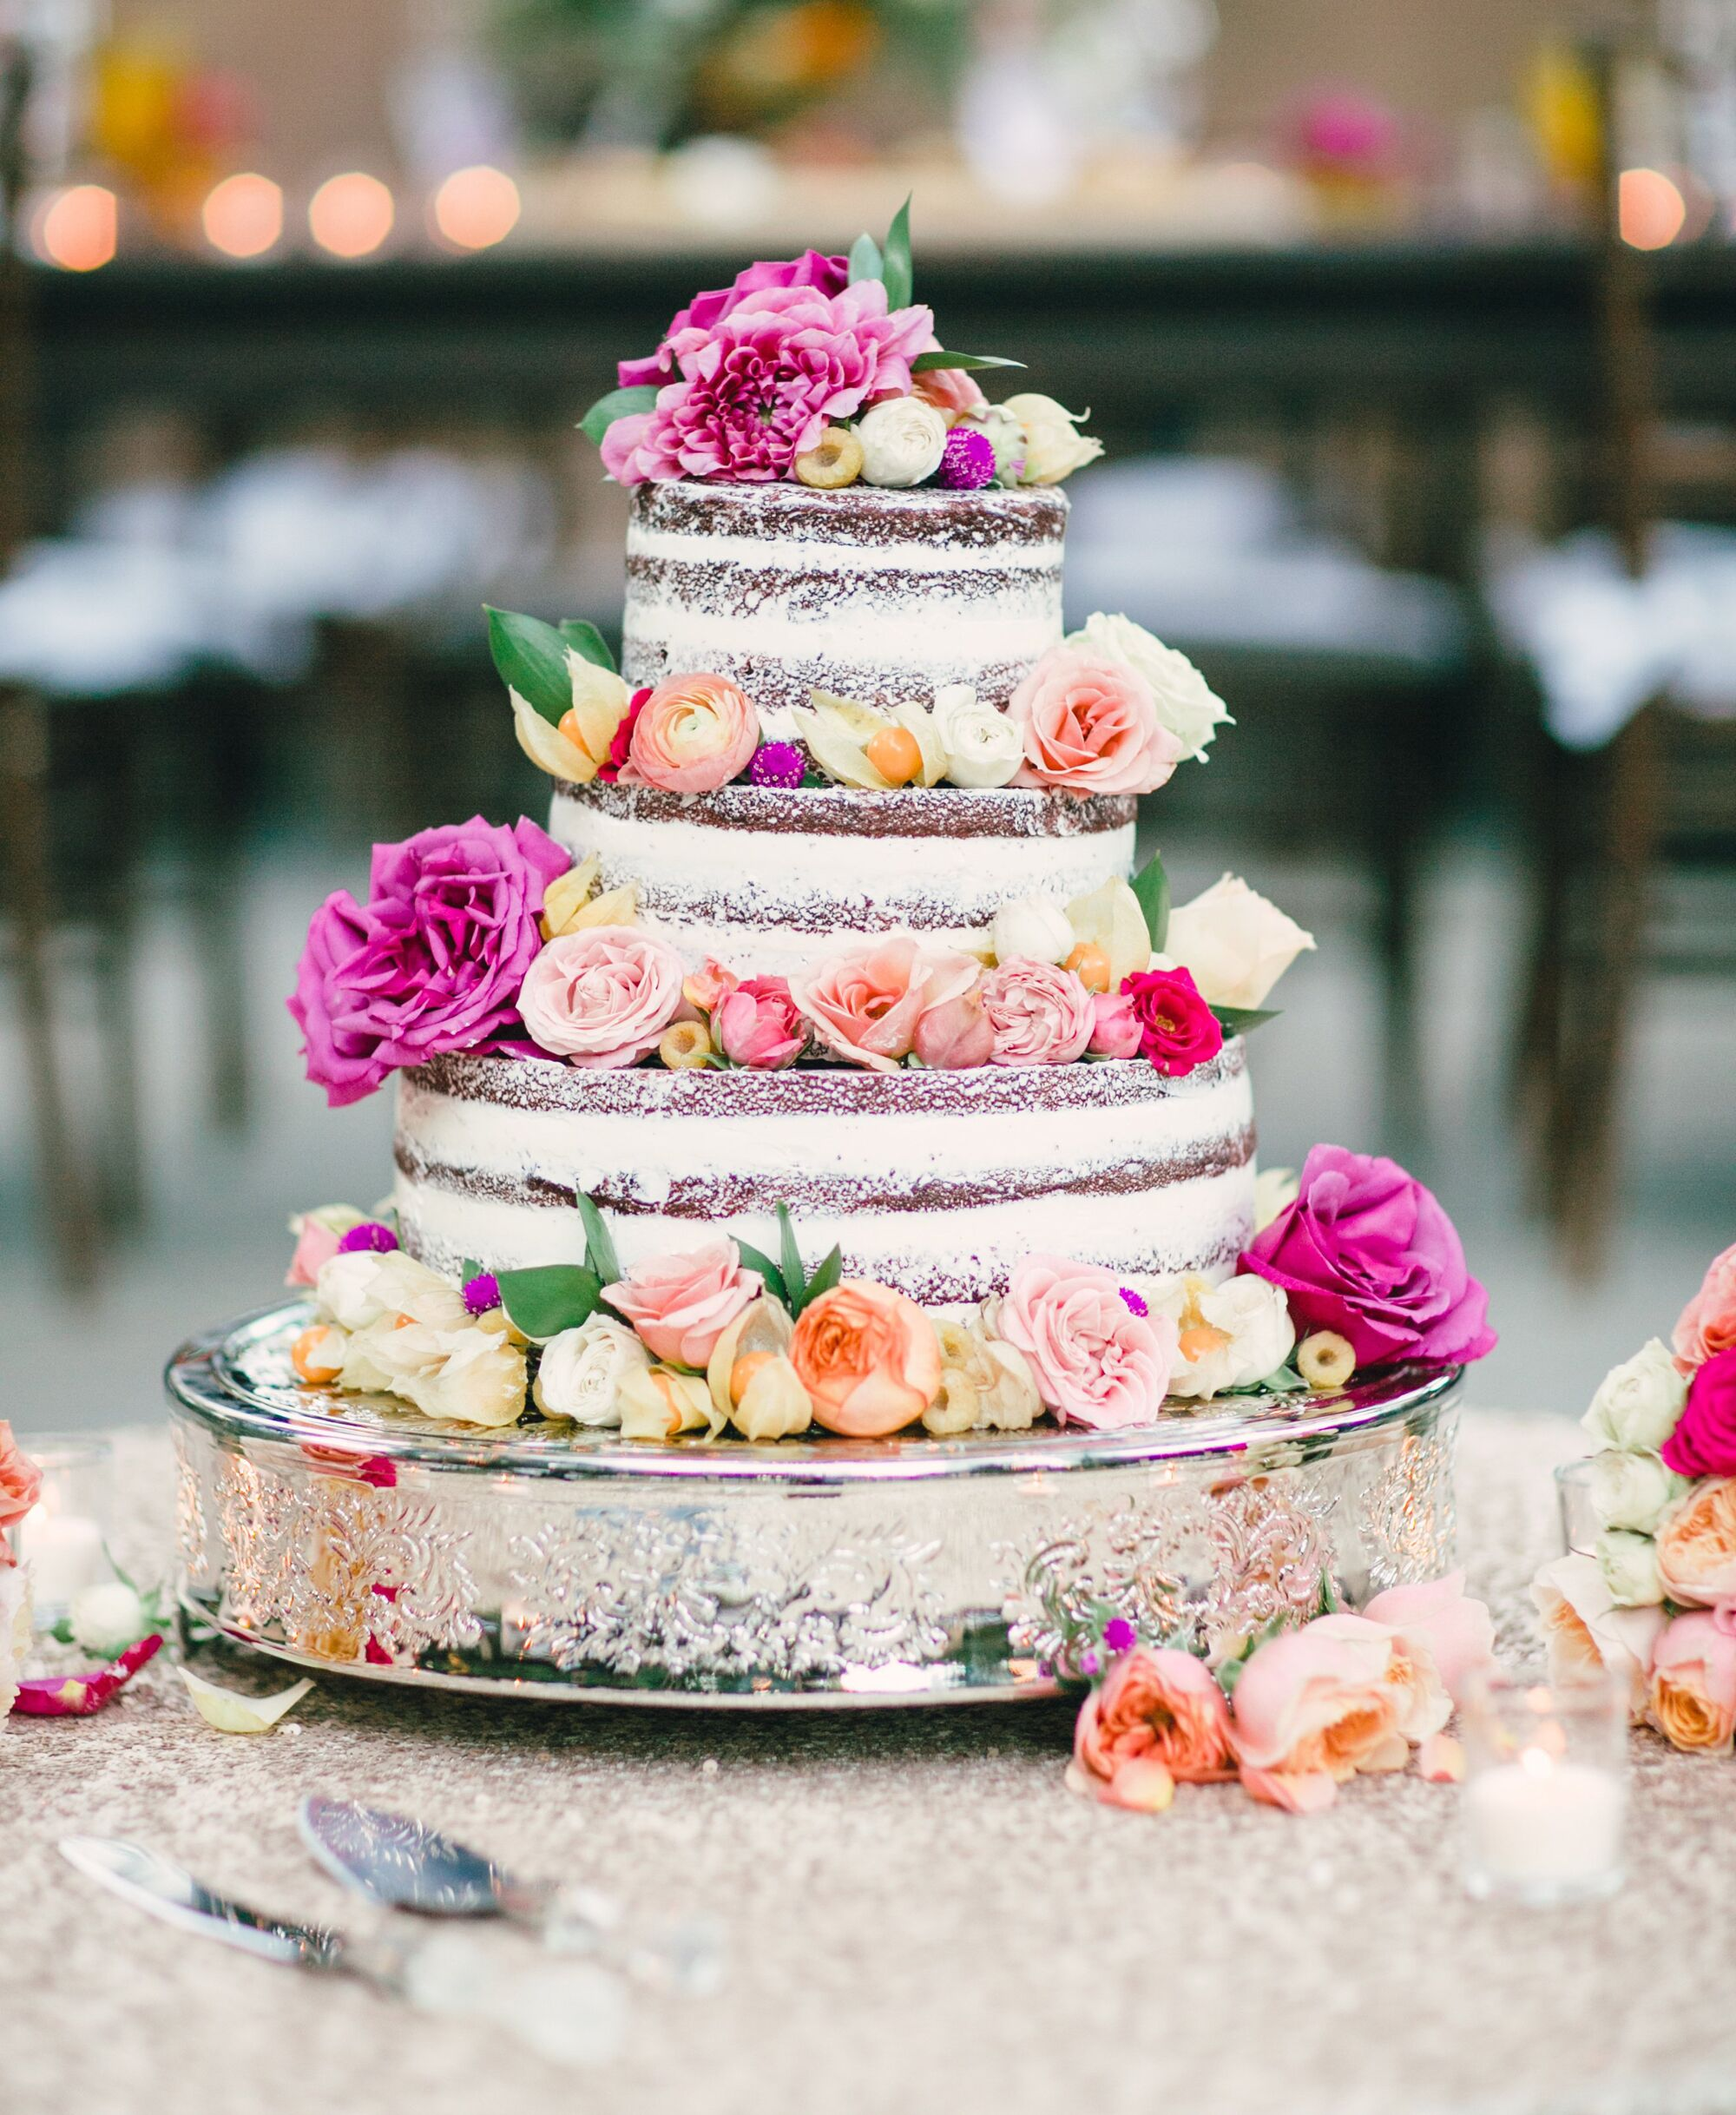 10 Stunning Naked Wedding Cake Ideas You Ll Love